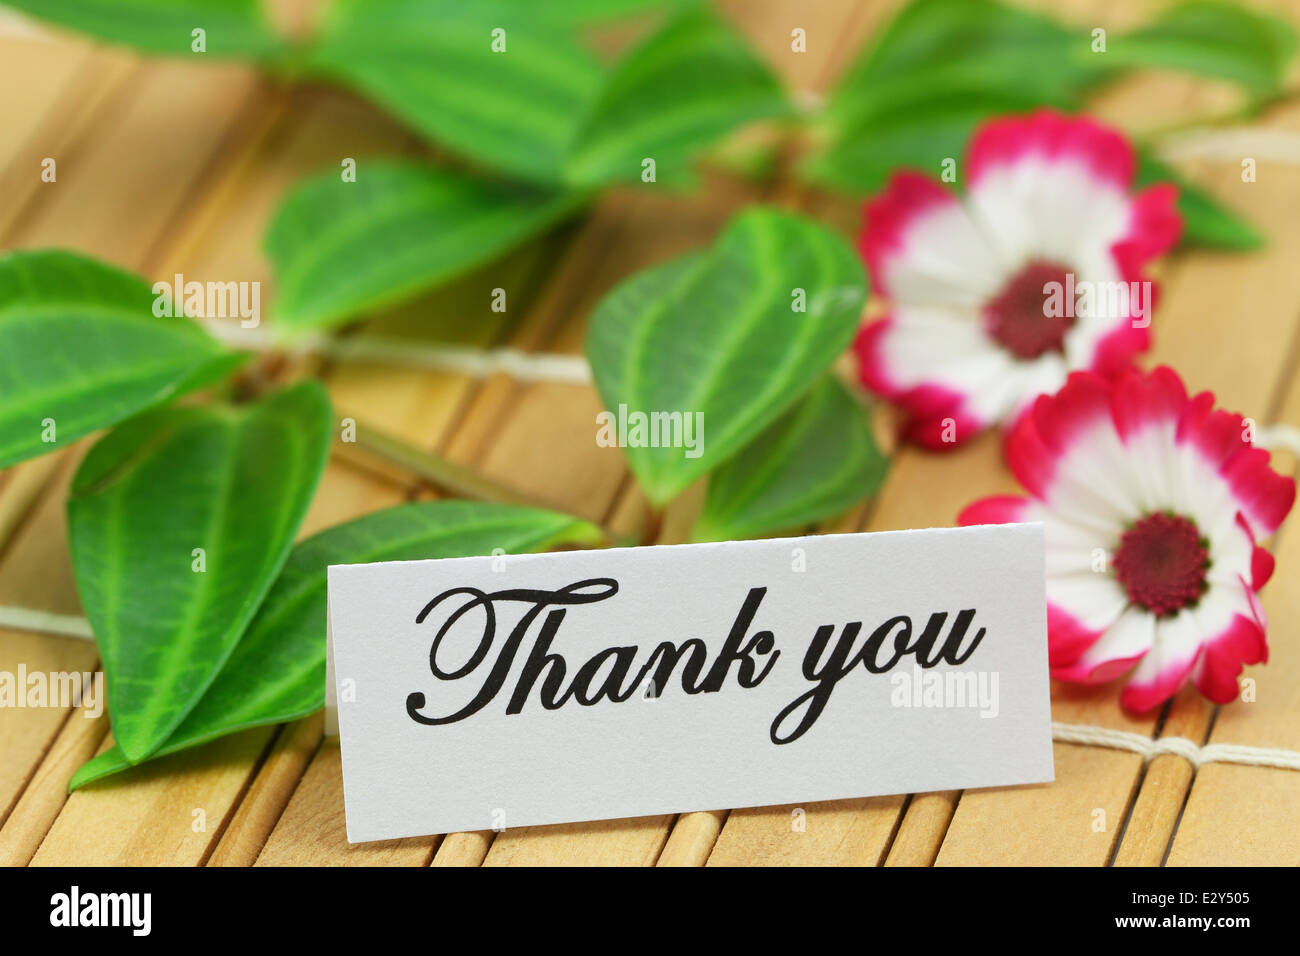 Thank You Card With Green Leaves And Daisy Flowers On Bamboo Mat